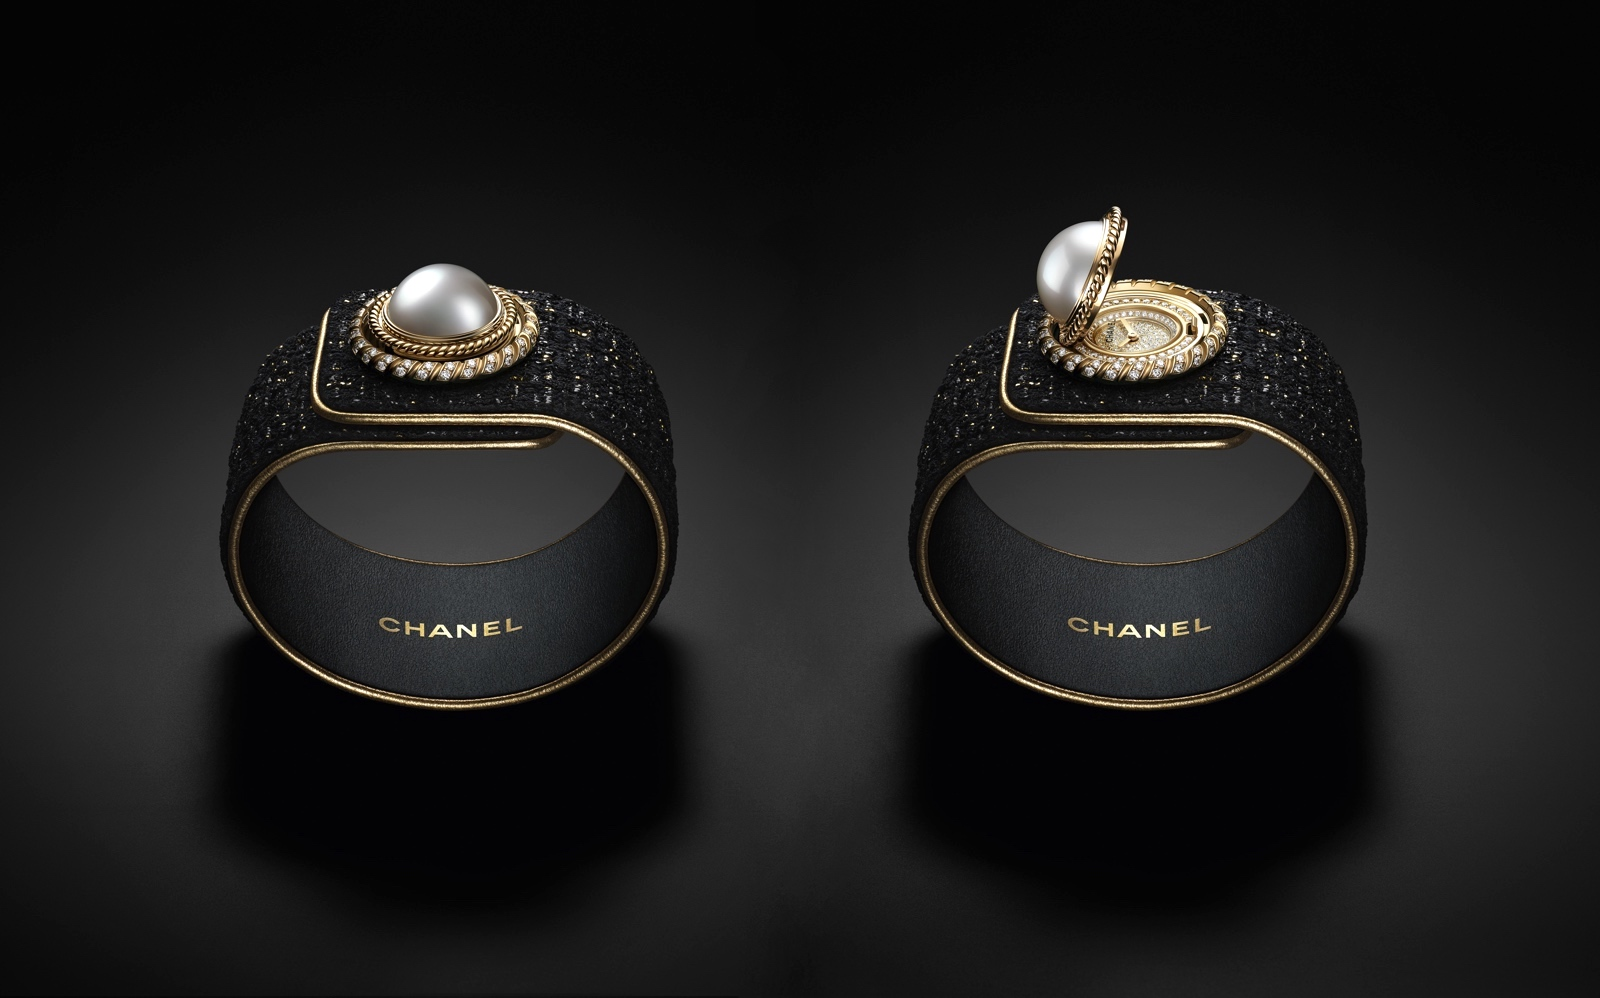 Chanel Mademoiselle Prive Bouton - open-closed